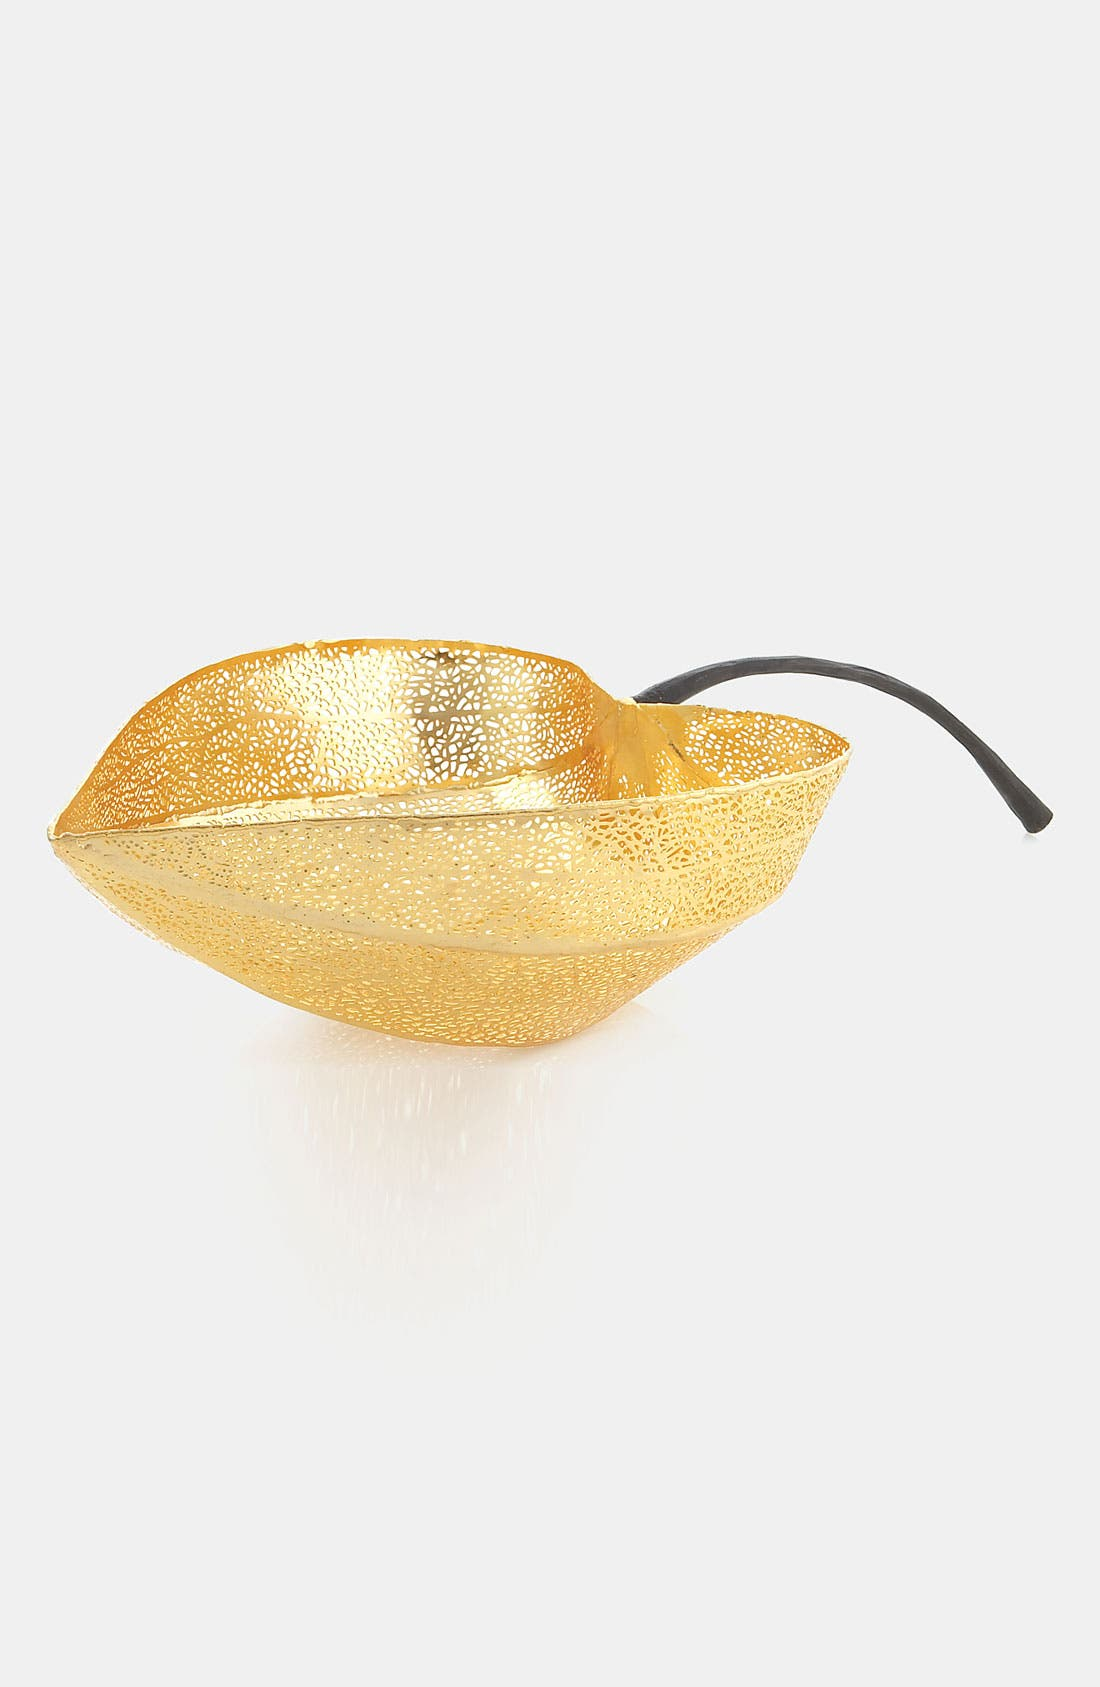 Alternate Image 1 Selected - Michael Aram 'Gooseberry' Pierced Bowl